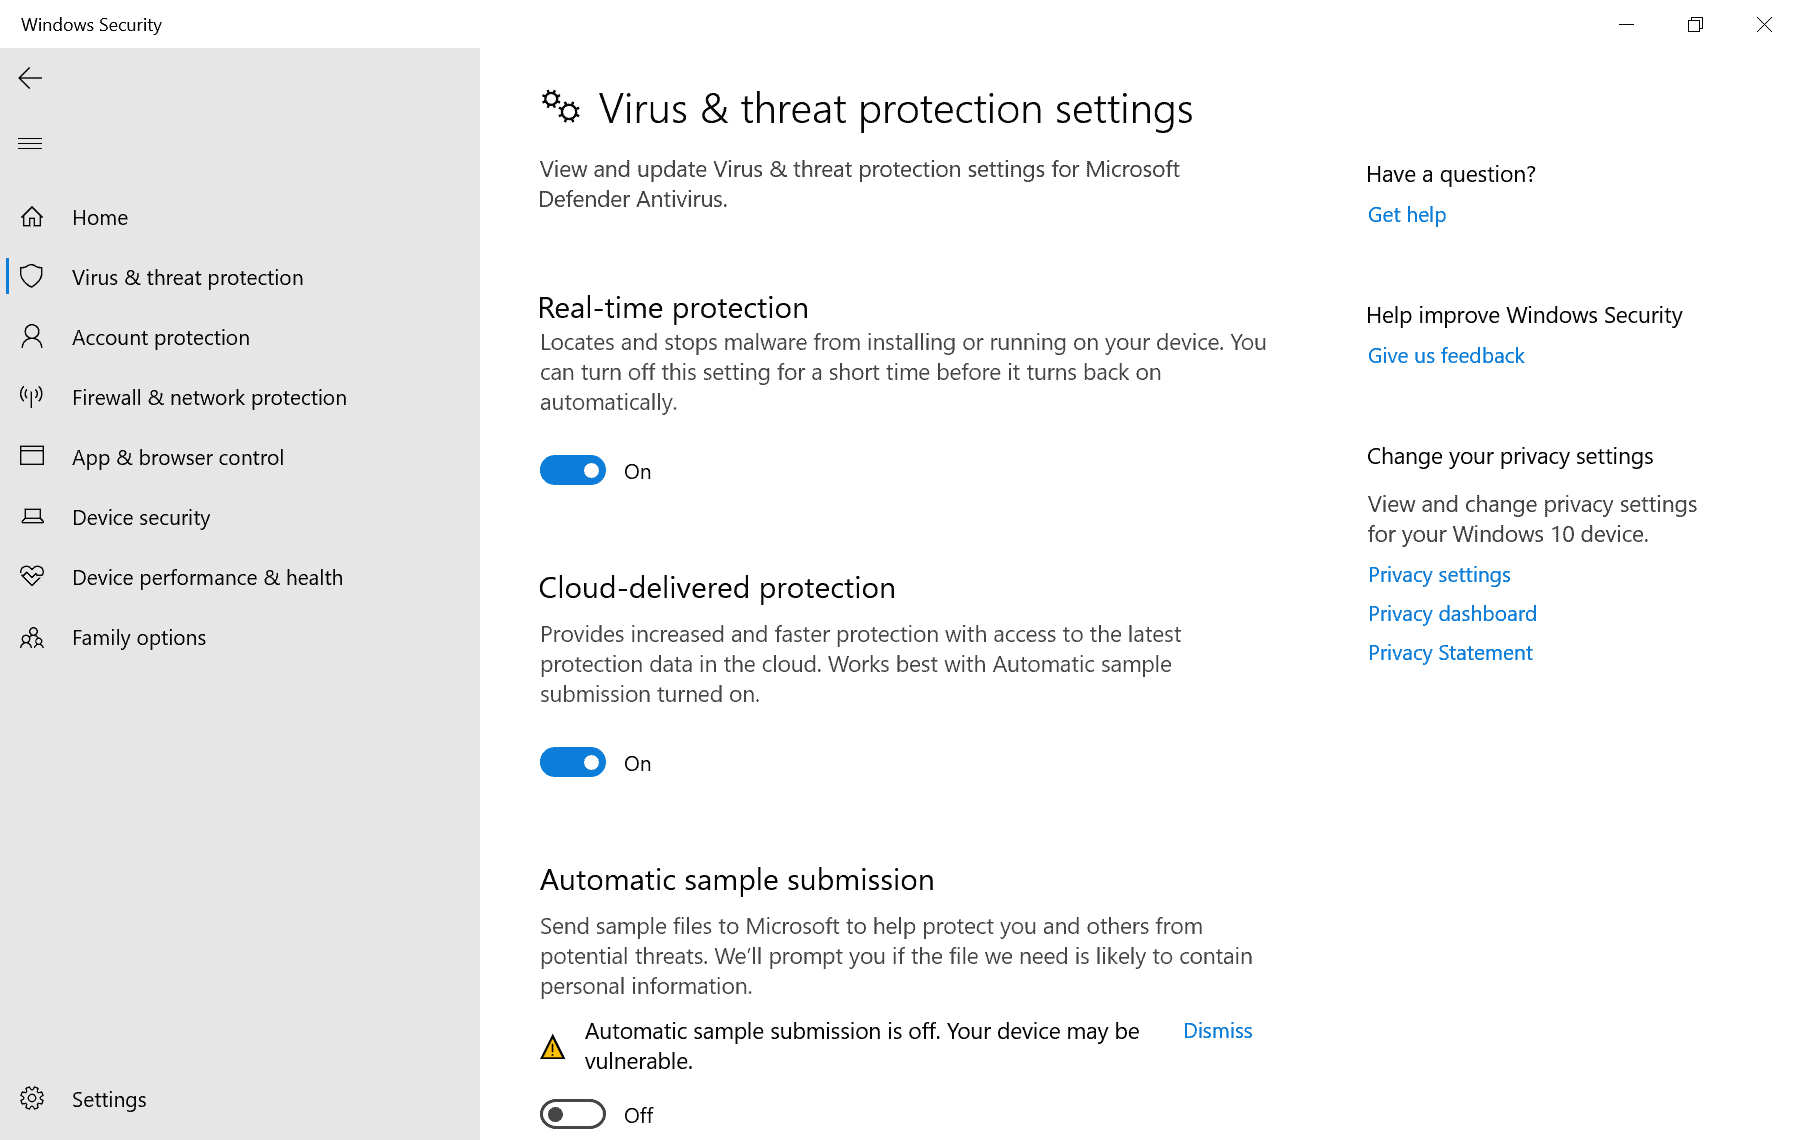 Microsoft makes it difficult to disable Windows Defender on Windows 10